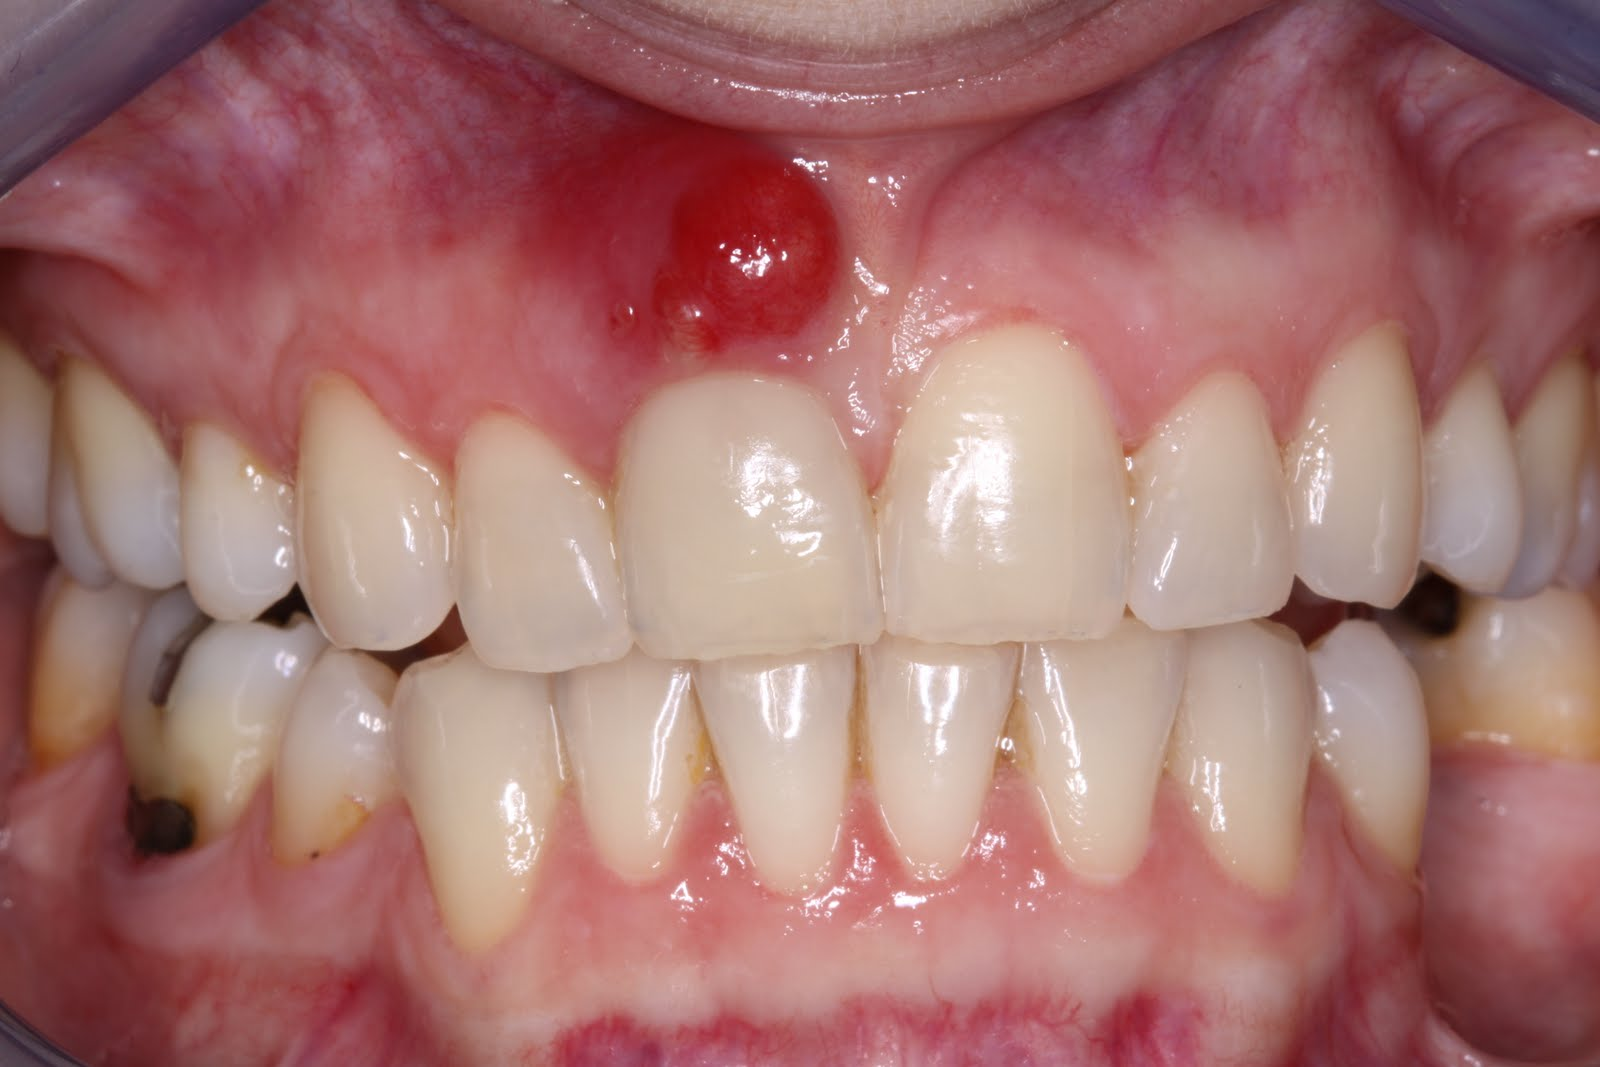 Periodontal Abscess in mouth